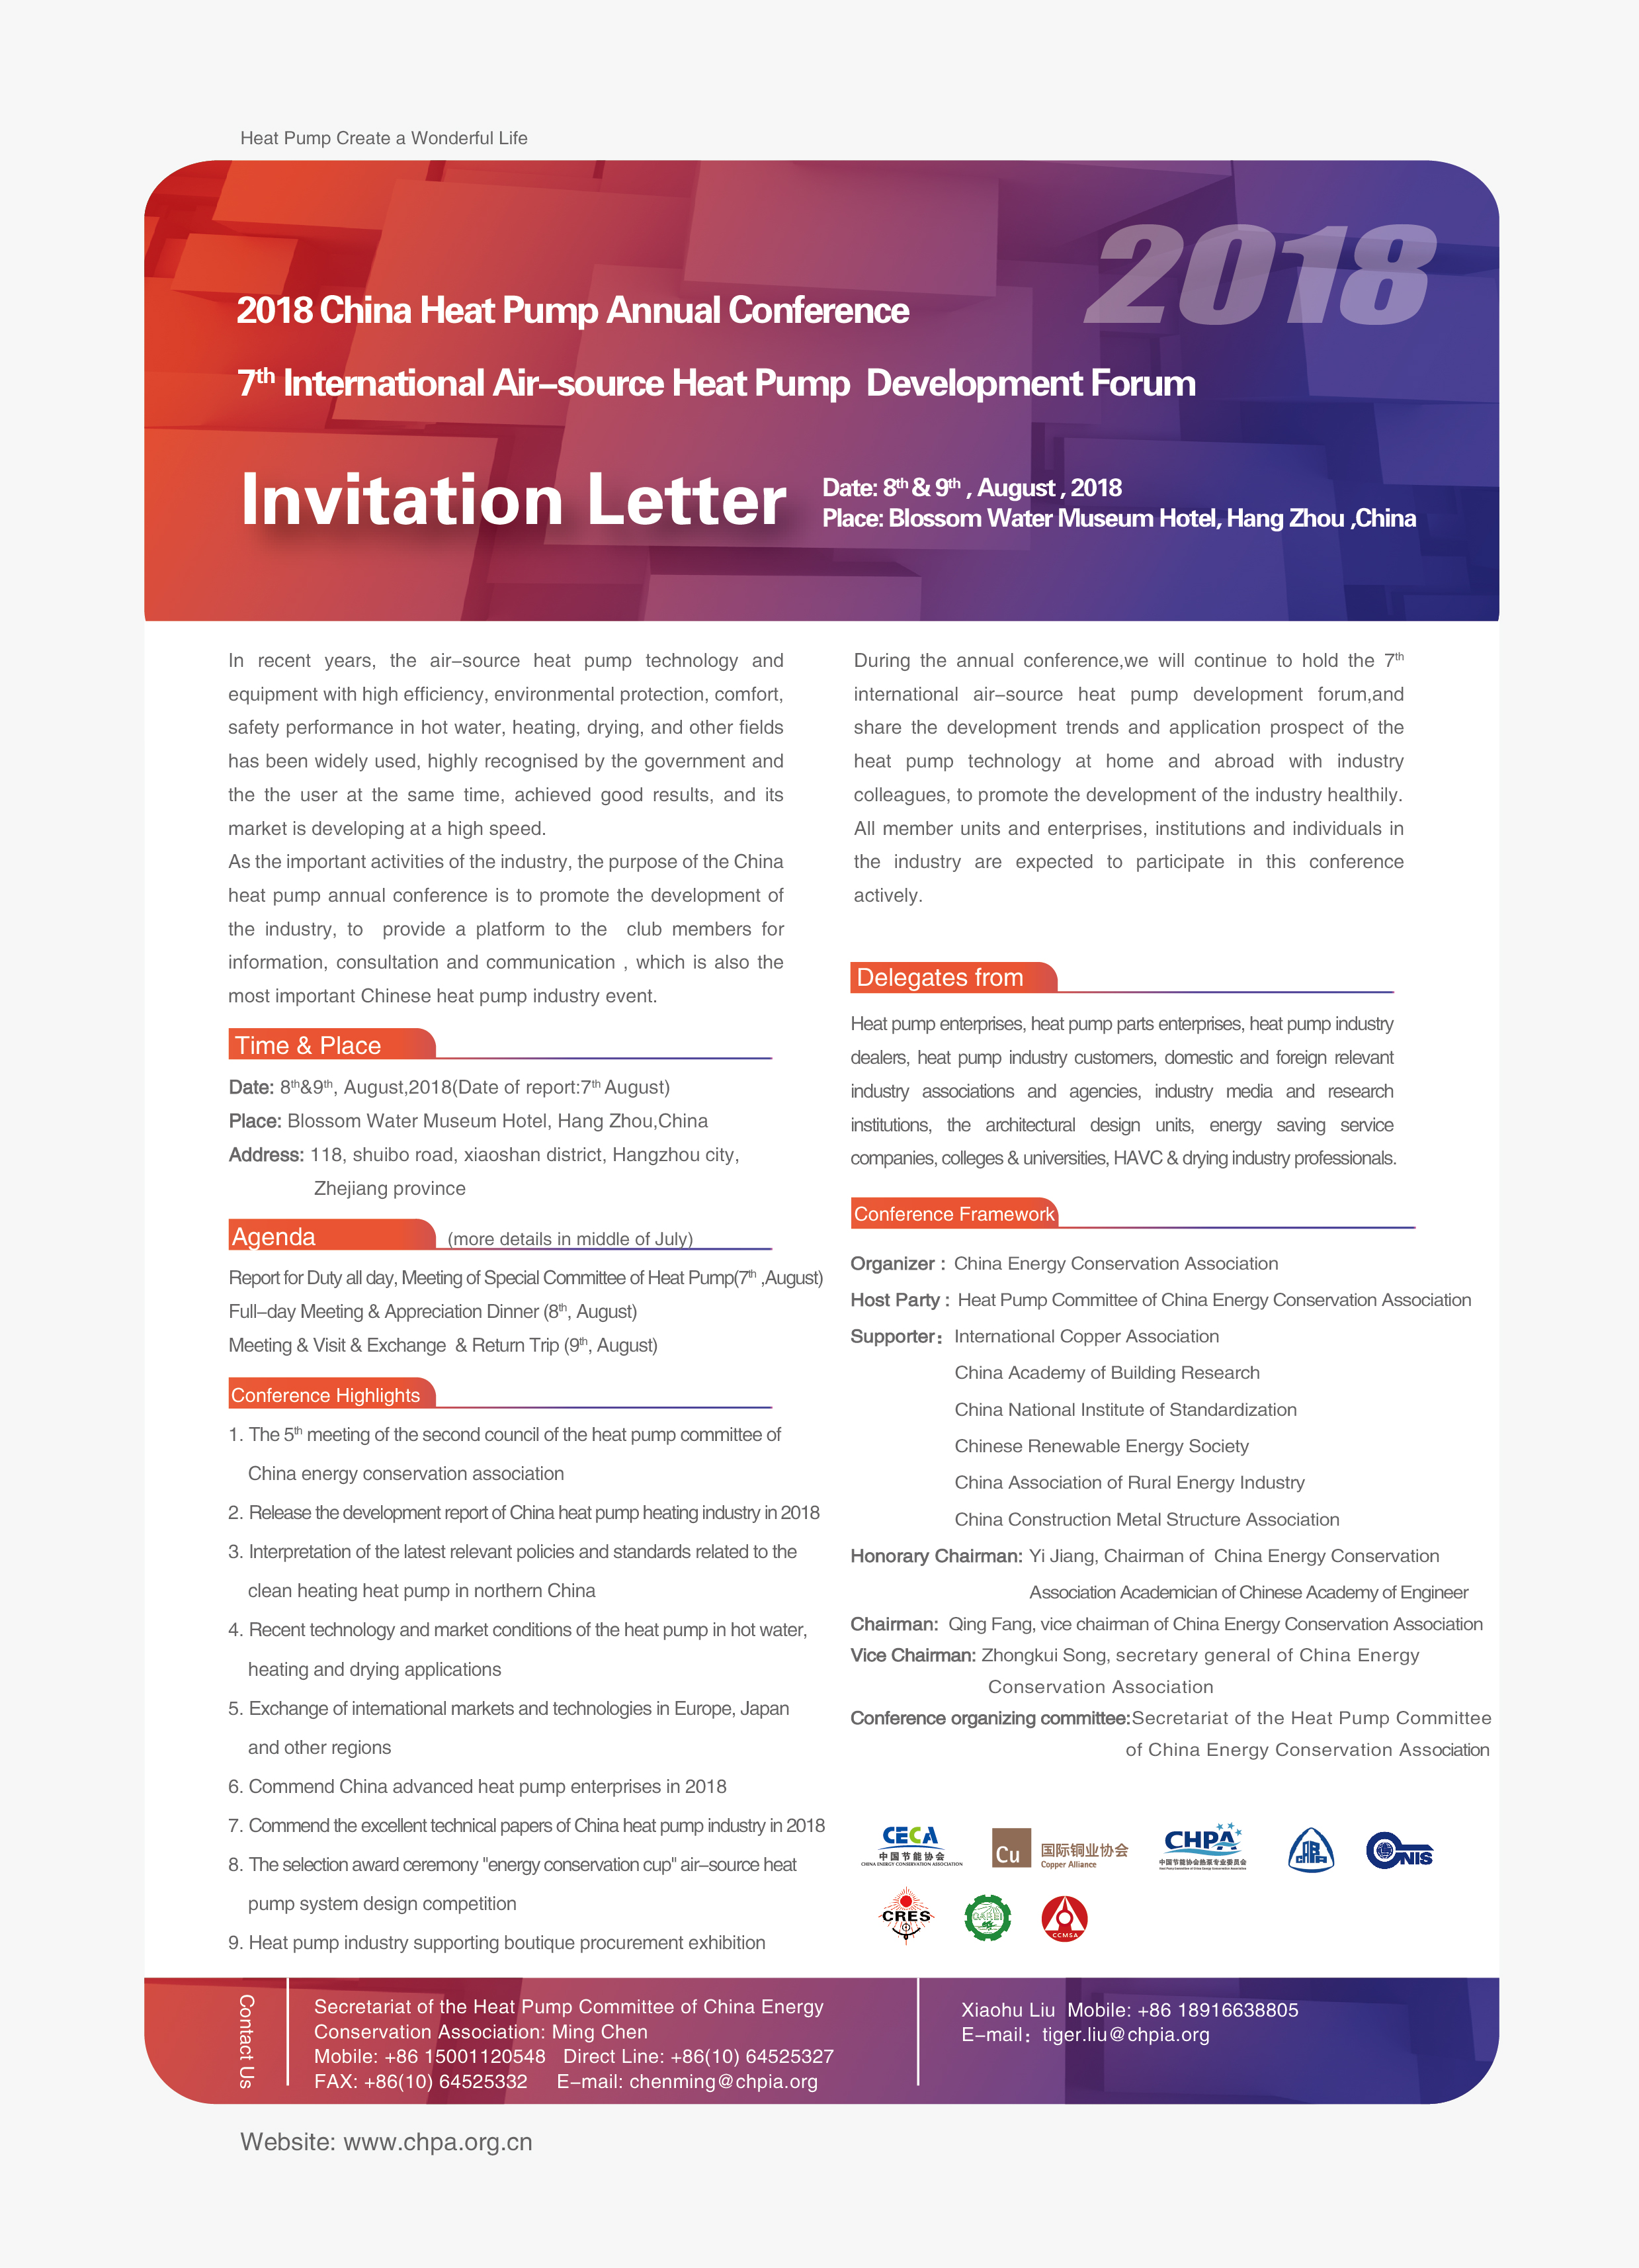 English Invitation Letter Hpt Heat Pumping Technologies